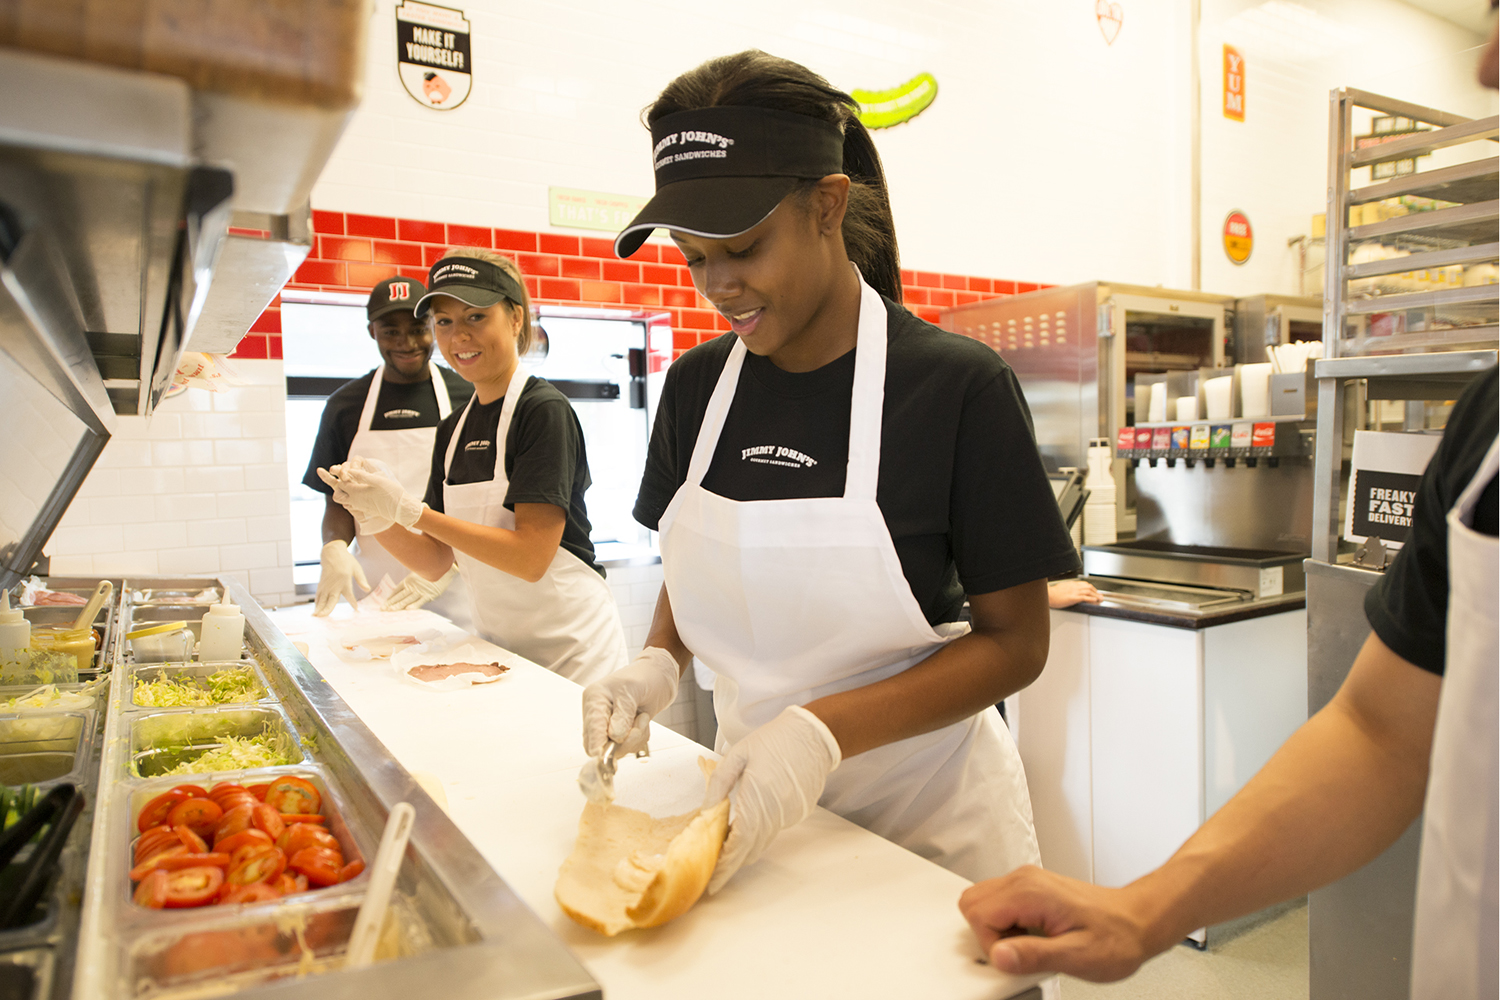 Low-wage workers, from fast-food to construction, are being asked to sign binding noncompete agreements. (Jimmy John's Franchise, LLC via Wikimedia Commons)